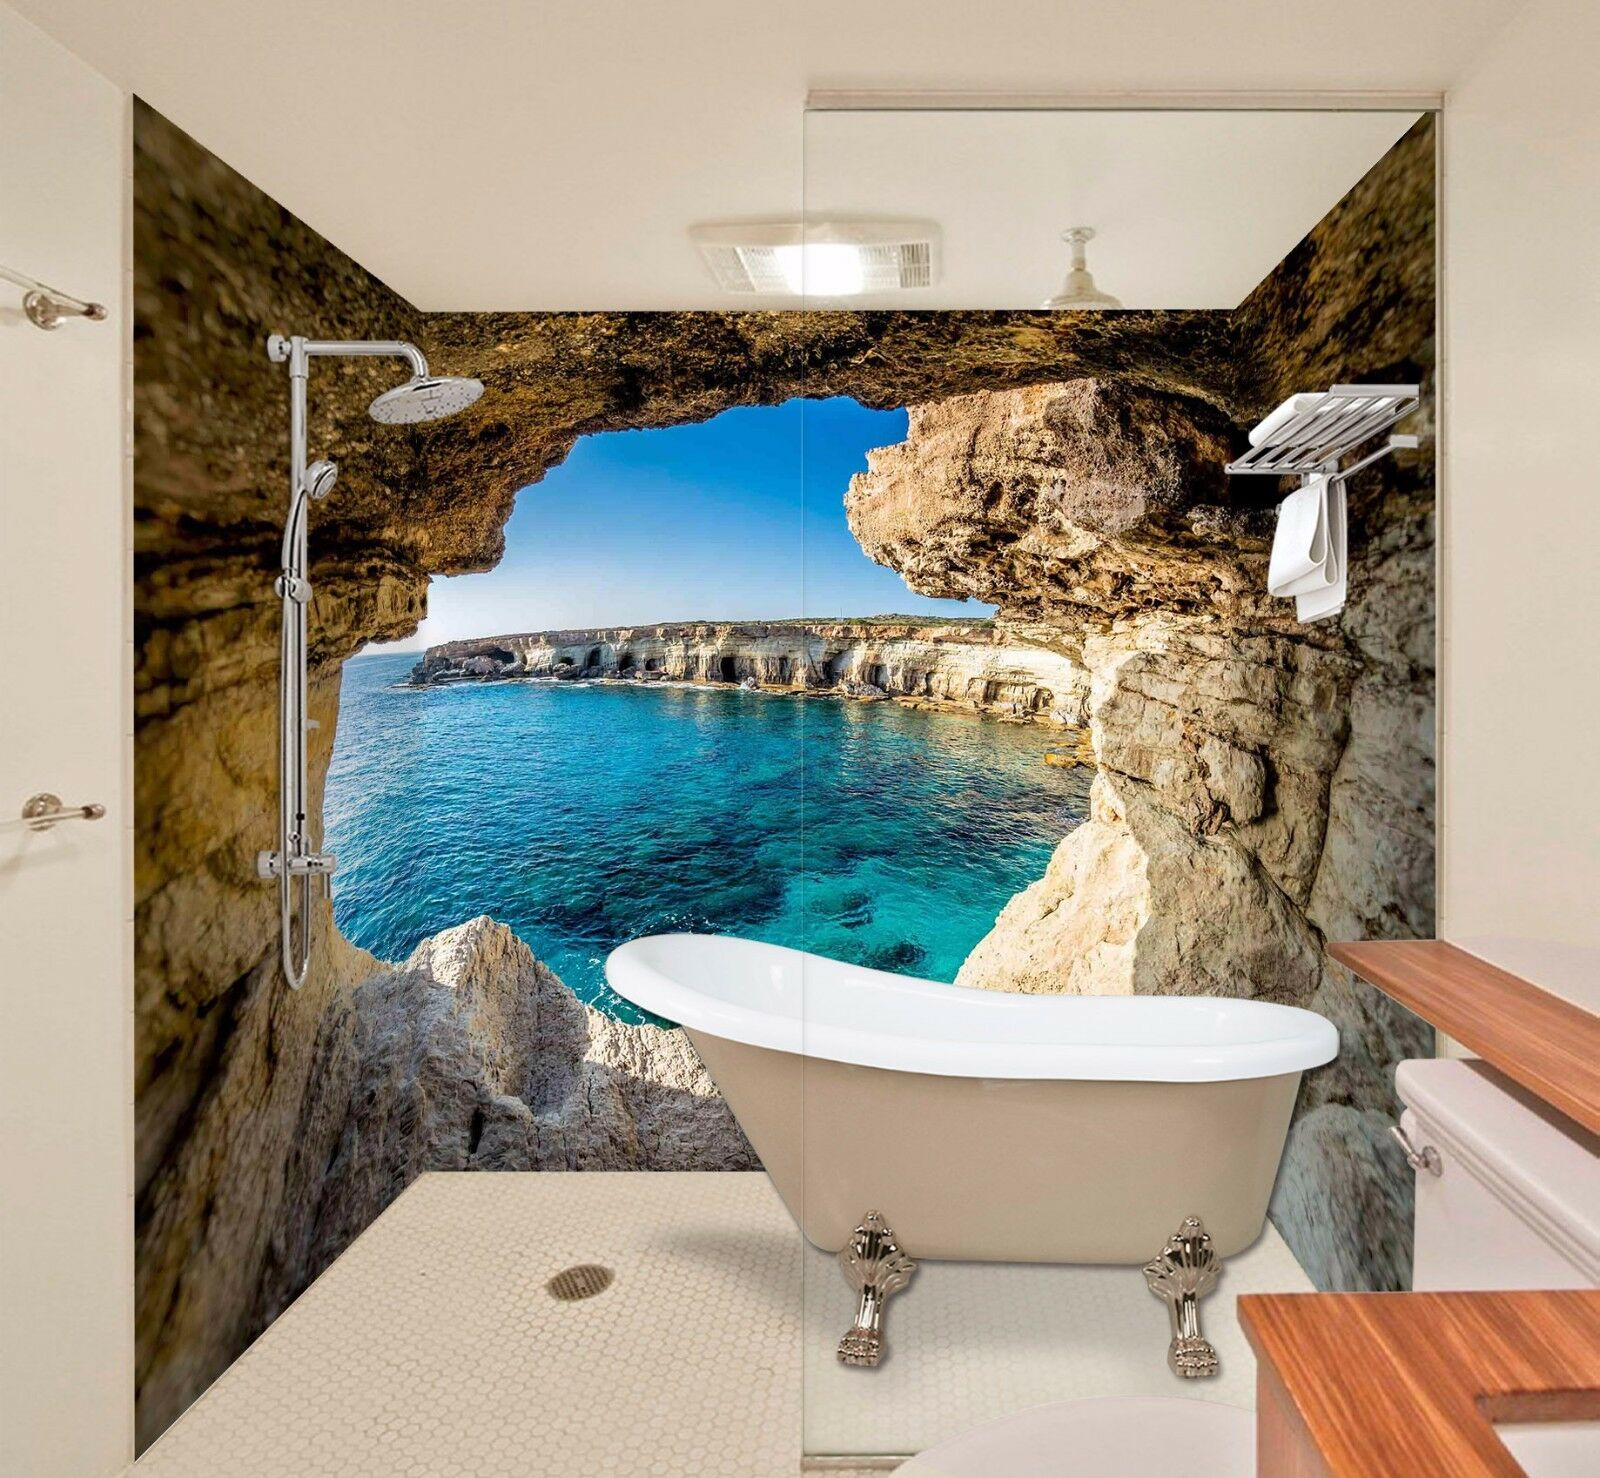 3D Cave Bule Pond WallPaper Bathroom Print Decal Wall Deco AJ WALLPAPER UK